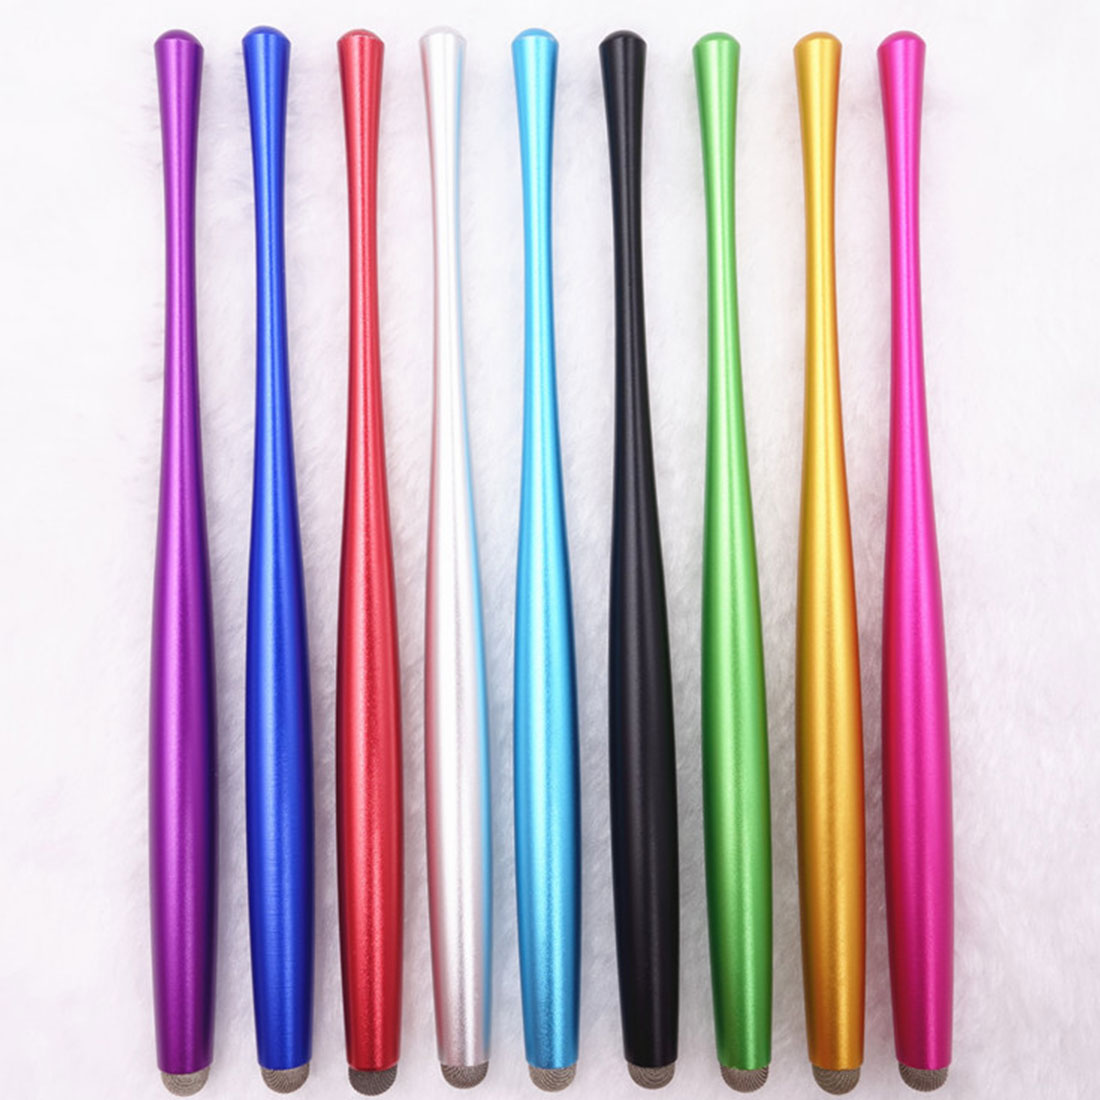 Long Section Waistline Pen Capacitive Stylus Pen Touch Screen Pen For IPhone IPad Android